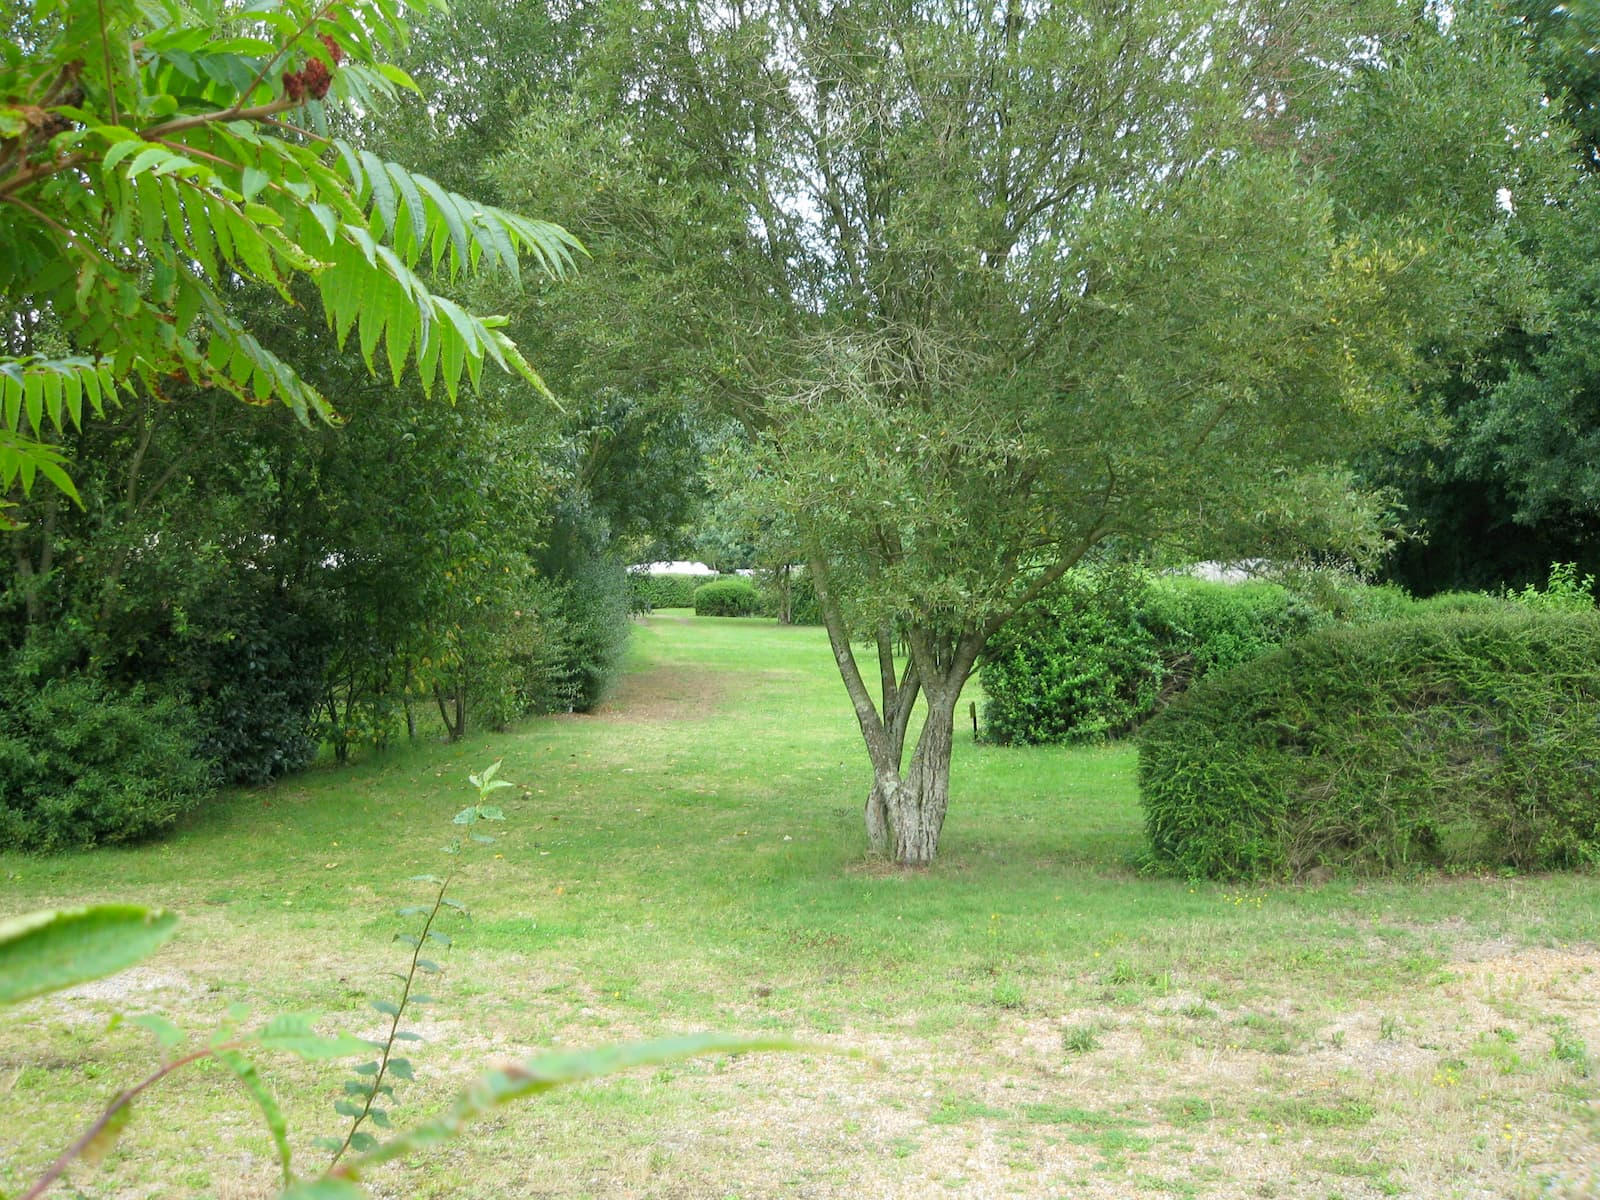 camping-belle-riviere-champ-arbre